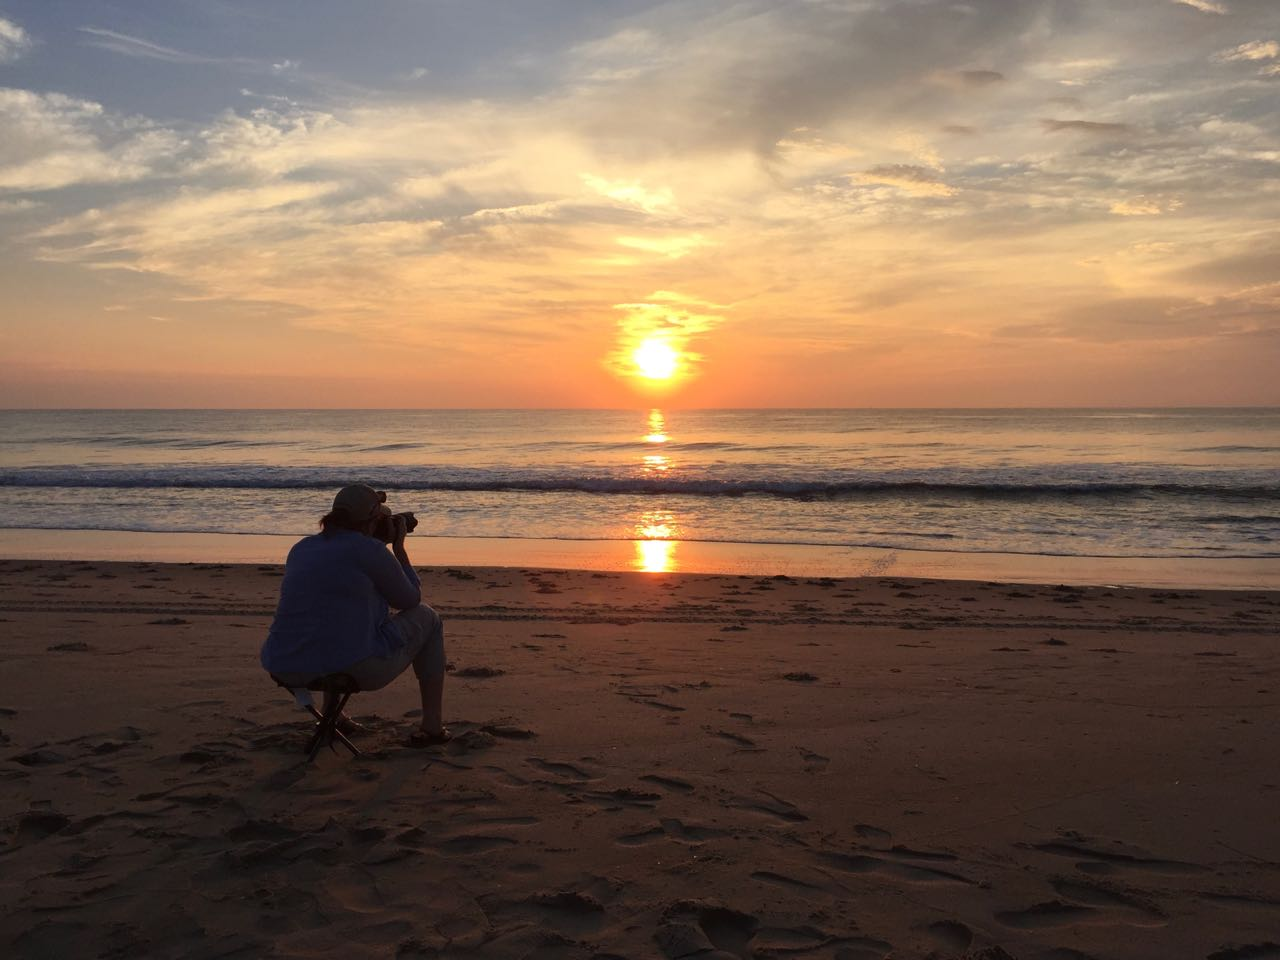 A woman photographing a sunrise on the beach while demonstrating an innovative method to capture a sharp image and reduce the effects of camera shake.